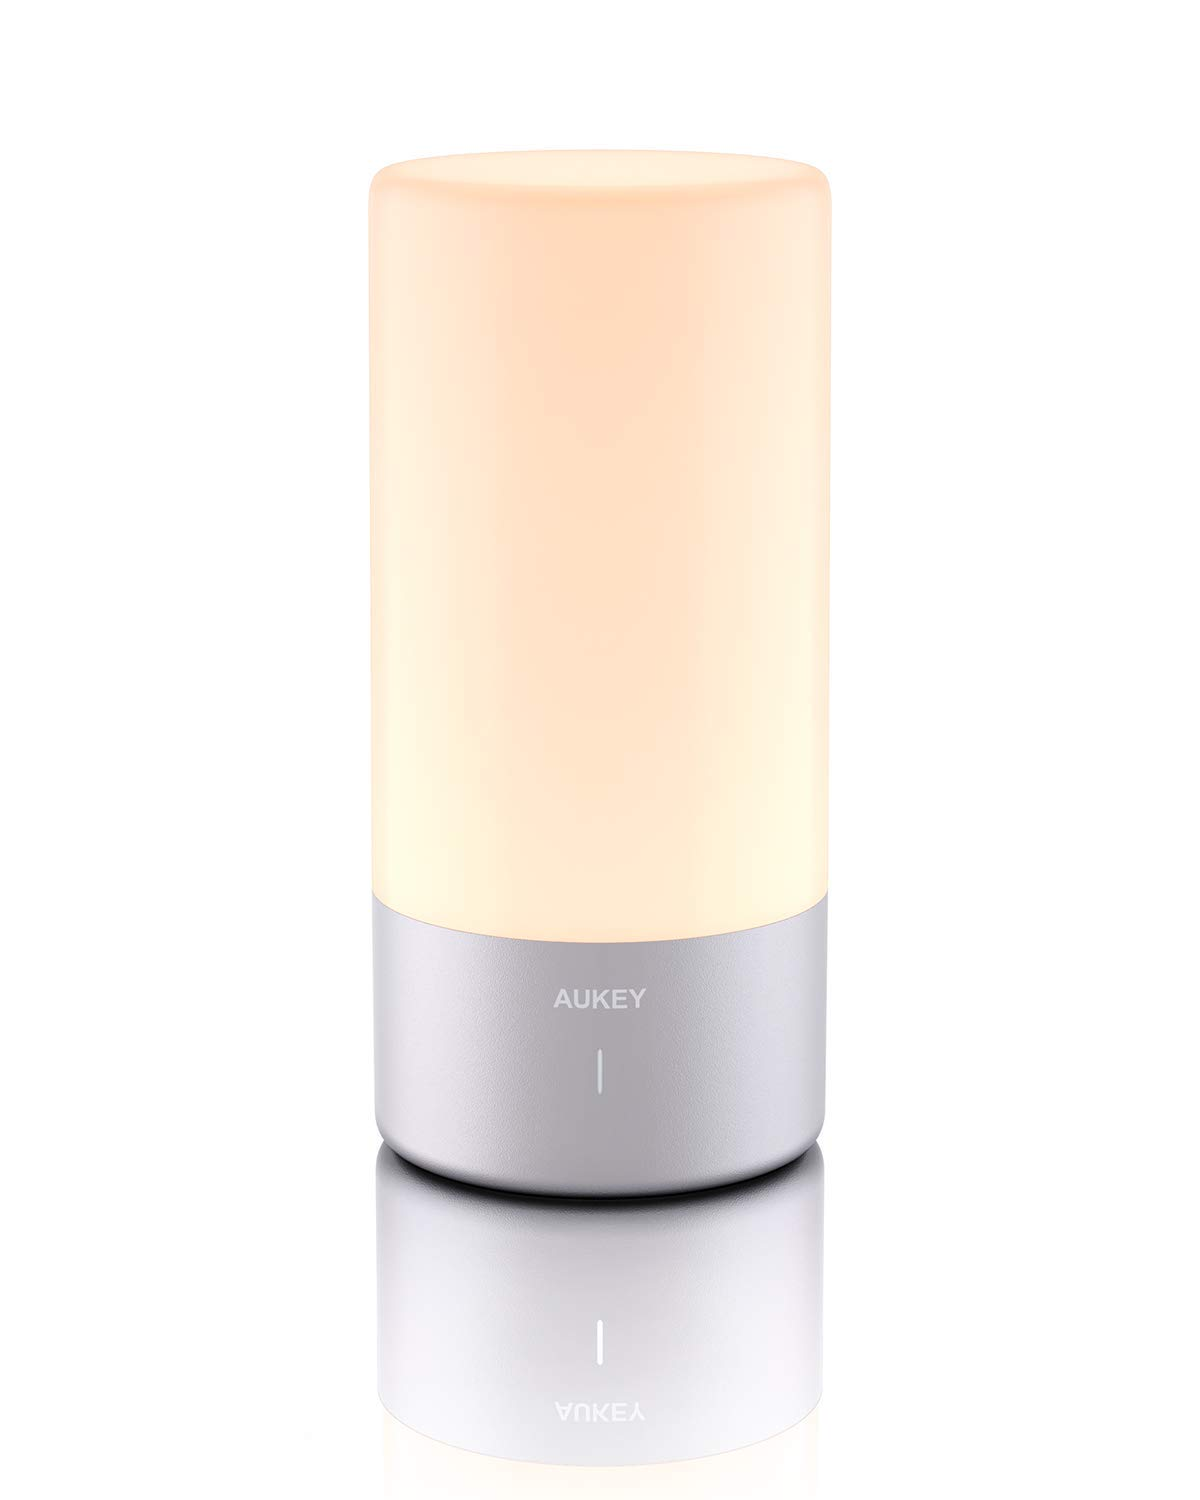 AUKEY Table Lamp Touch Sensor Bedside Lamp Color Changing RGB & Dimmable Warm White Light Night Light for Bedrooms, Living Rooms and Office【2021 Updated Version】